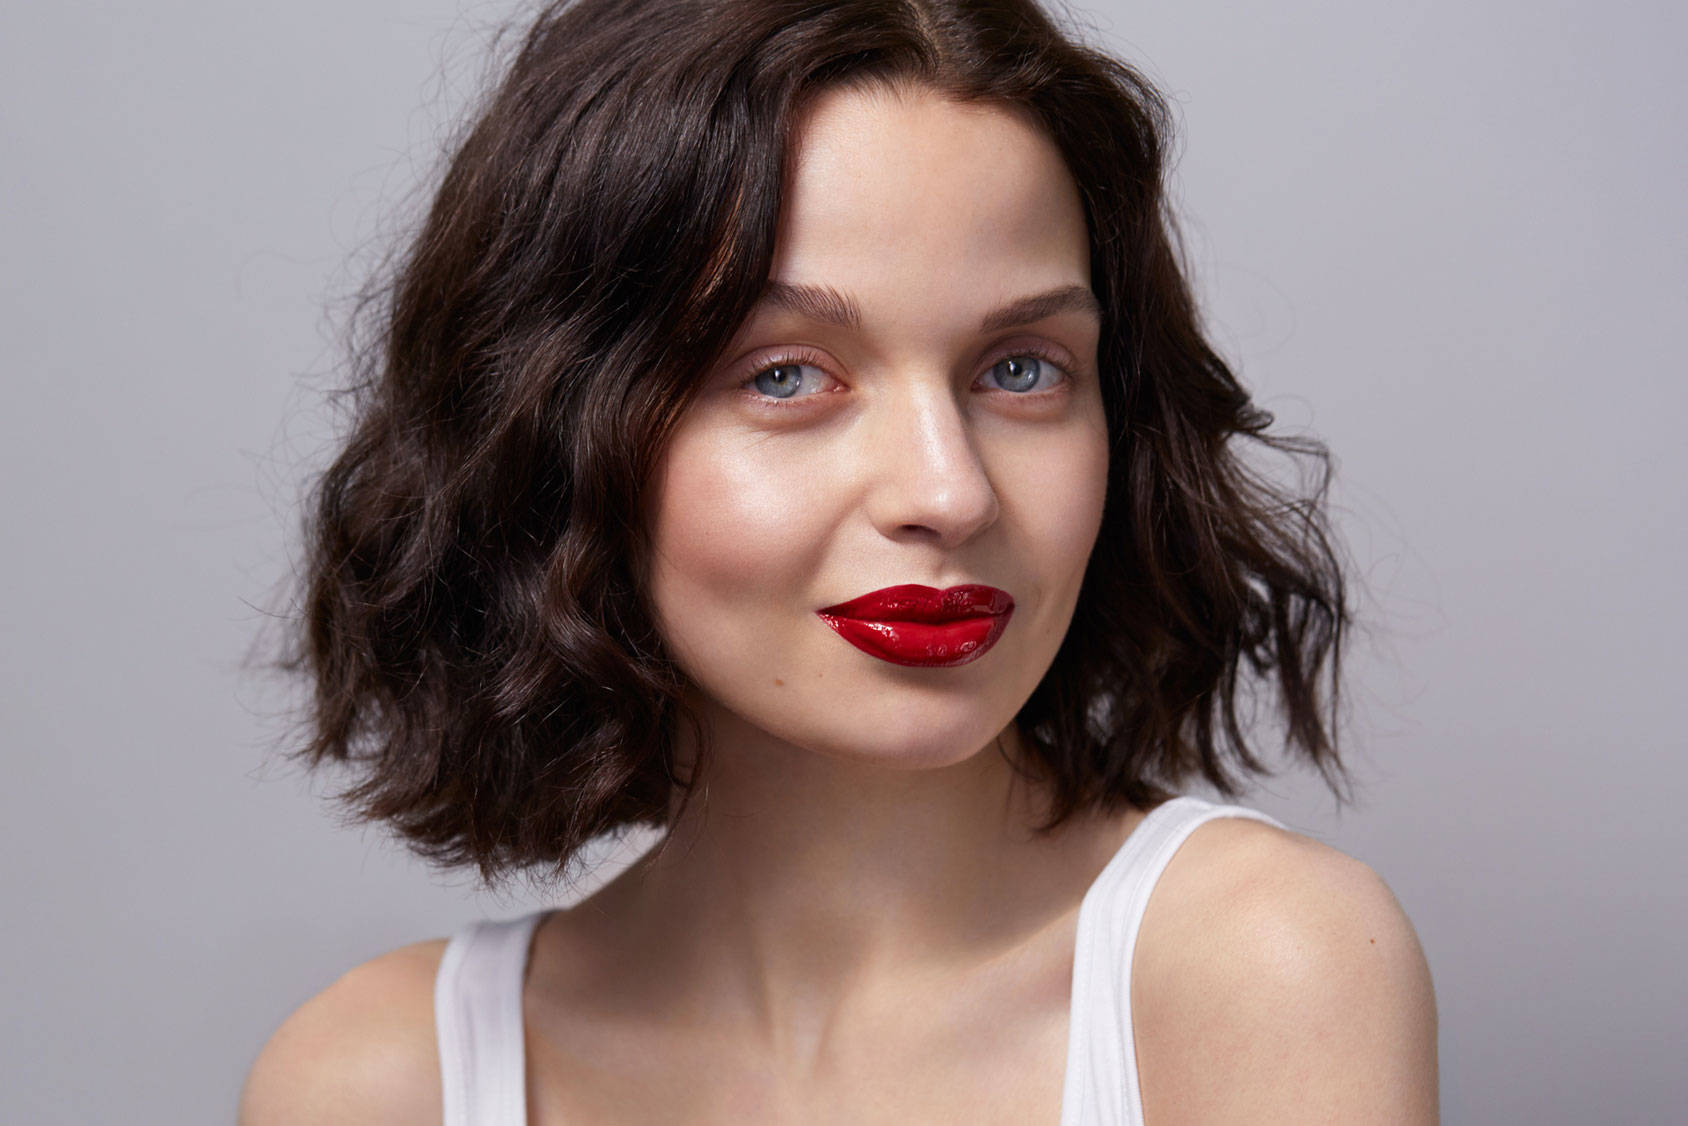 The Perfect Red Lips